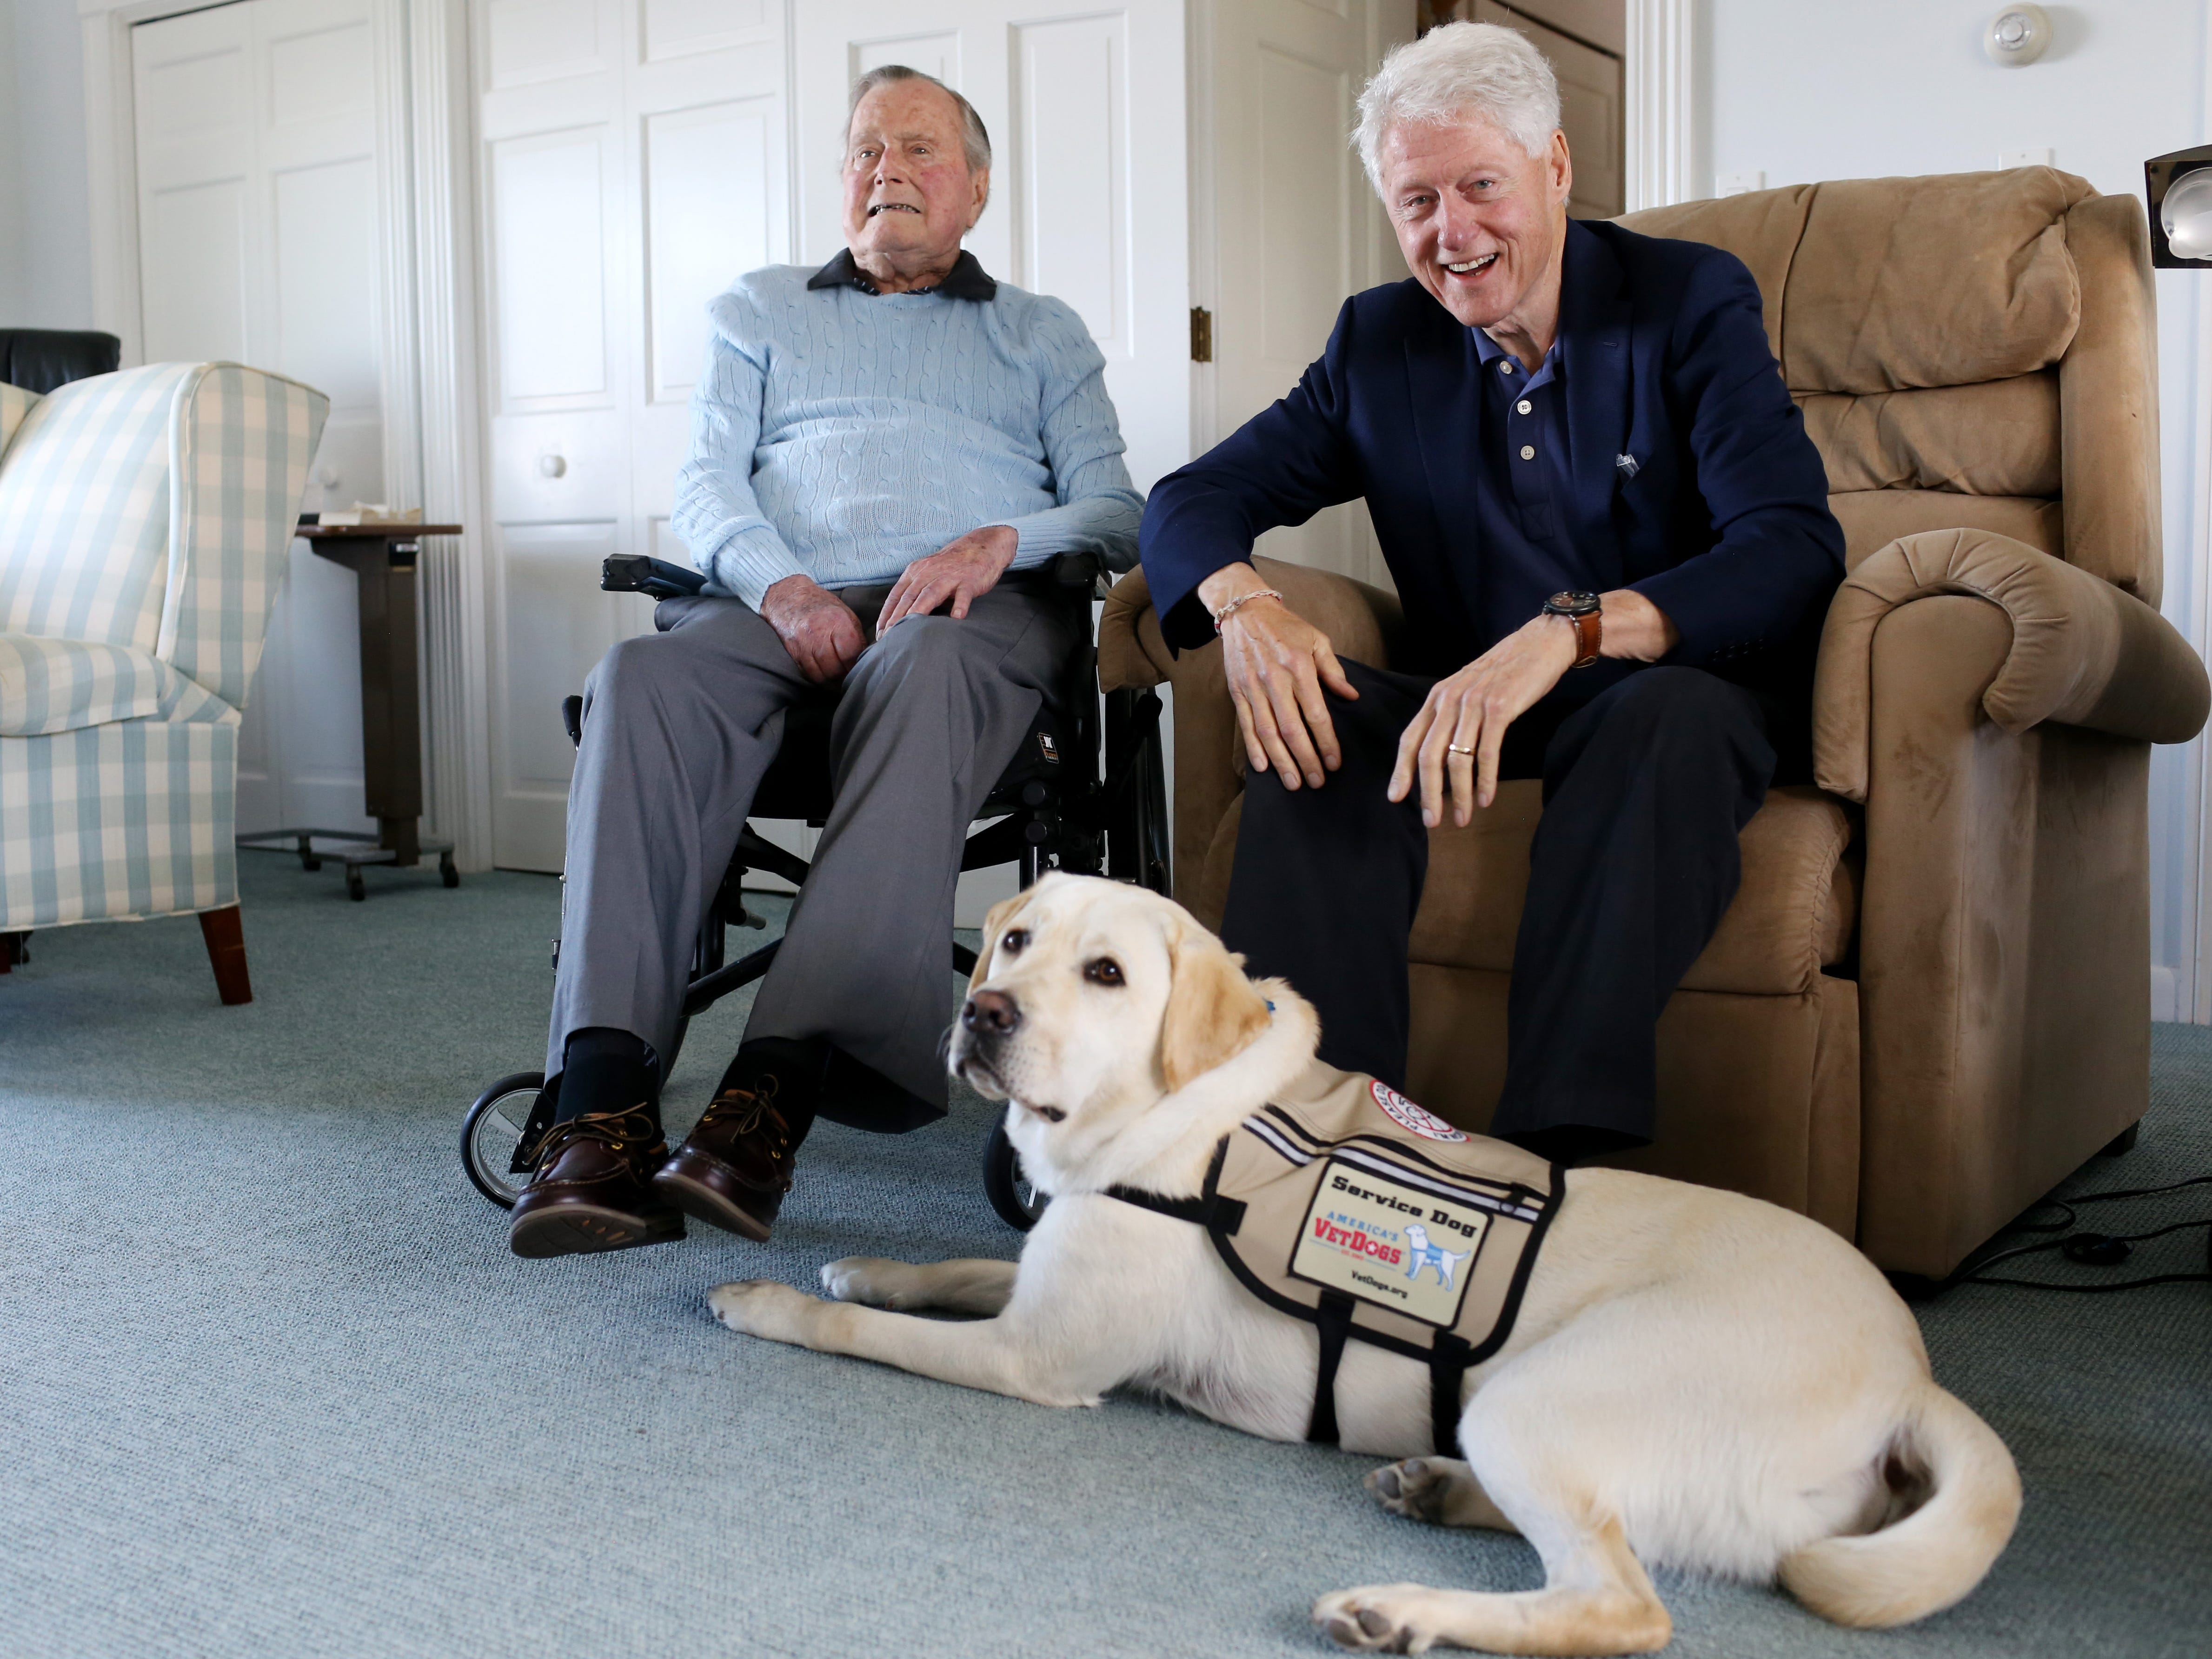 Former Republican President George H.W. Bush and former President Bill Clinton, visiting Bush, pose for a photo with Sully, June 25, 2018.